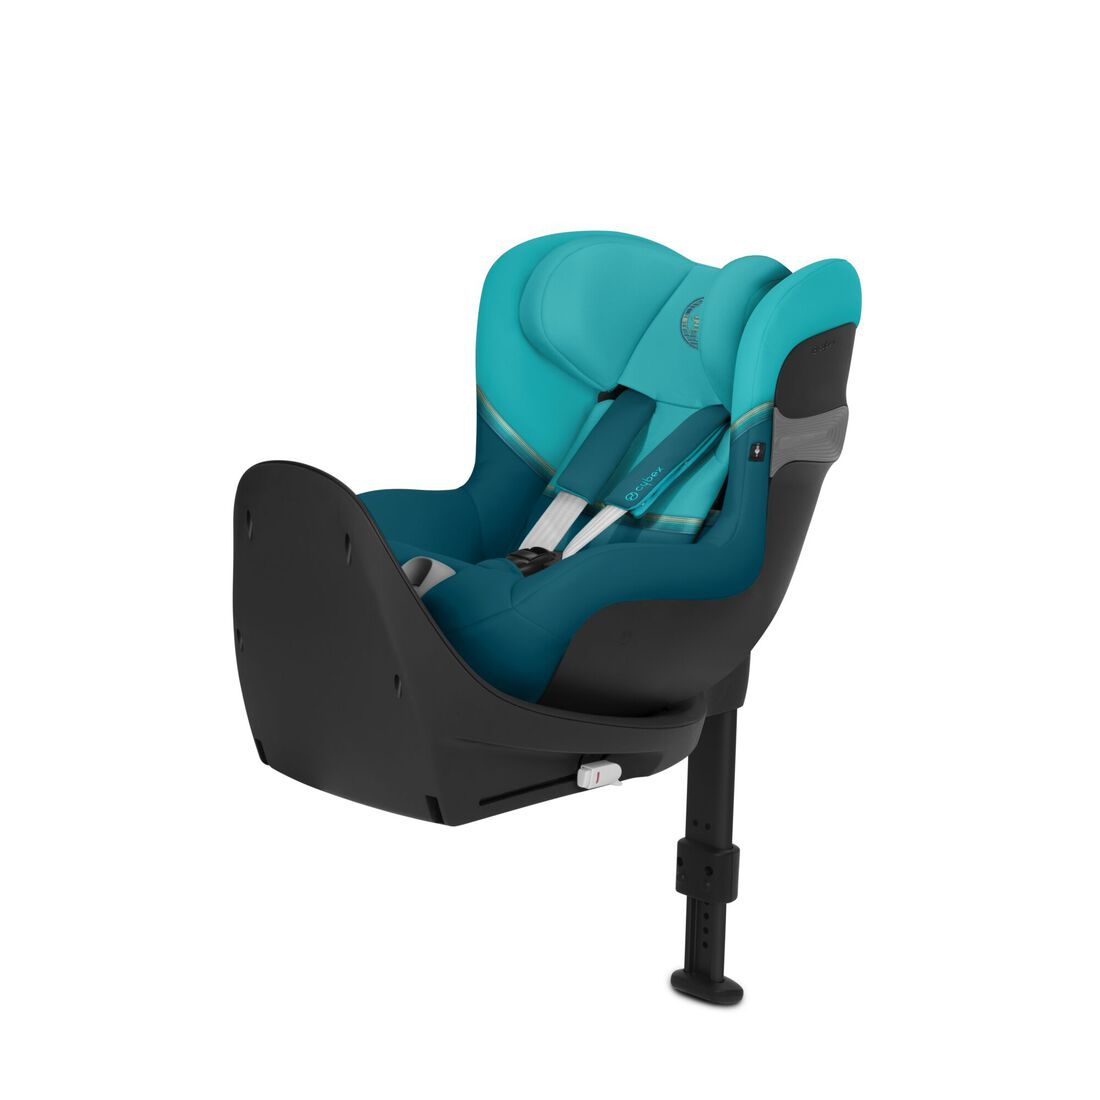 CYBEX Sirona S2 i-Size - River Blue in River Blue large image number 1